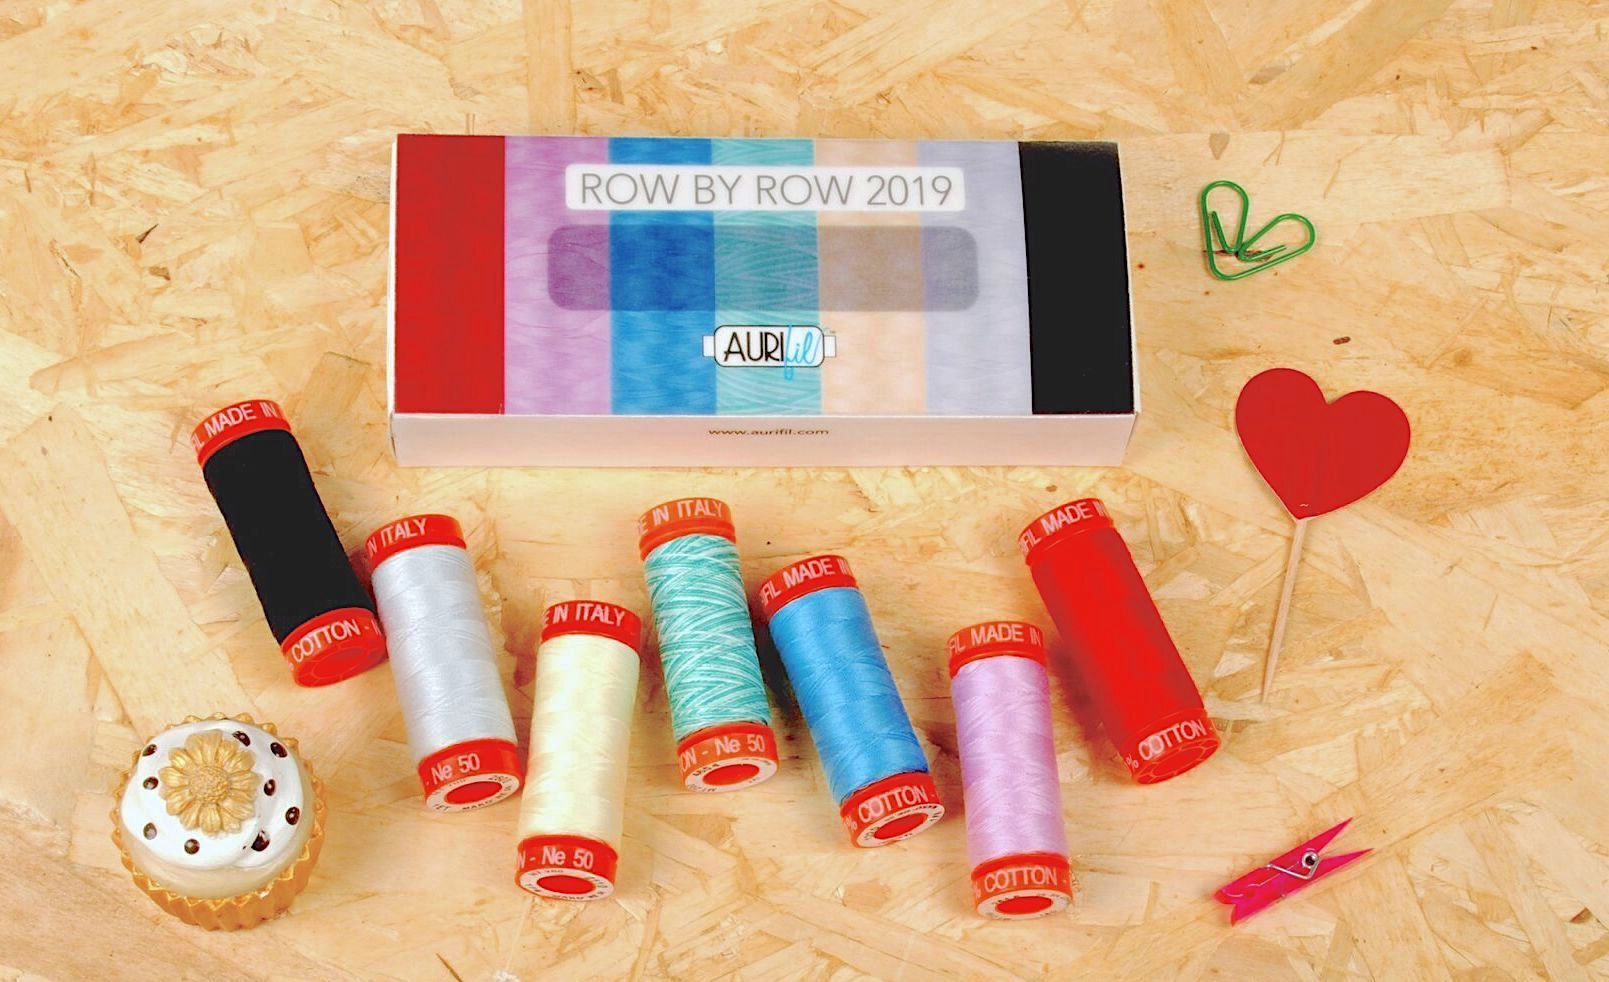 Row by Row Thread Limited Edition 7 Spool Thread collection